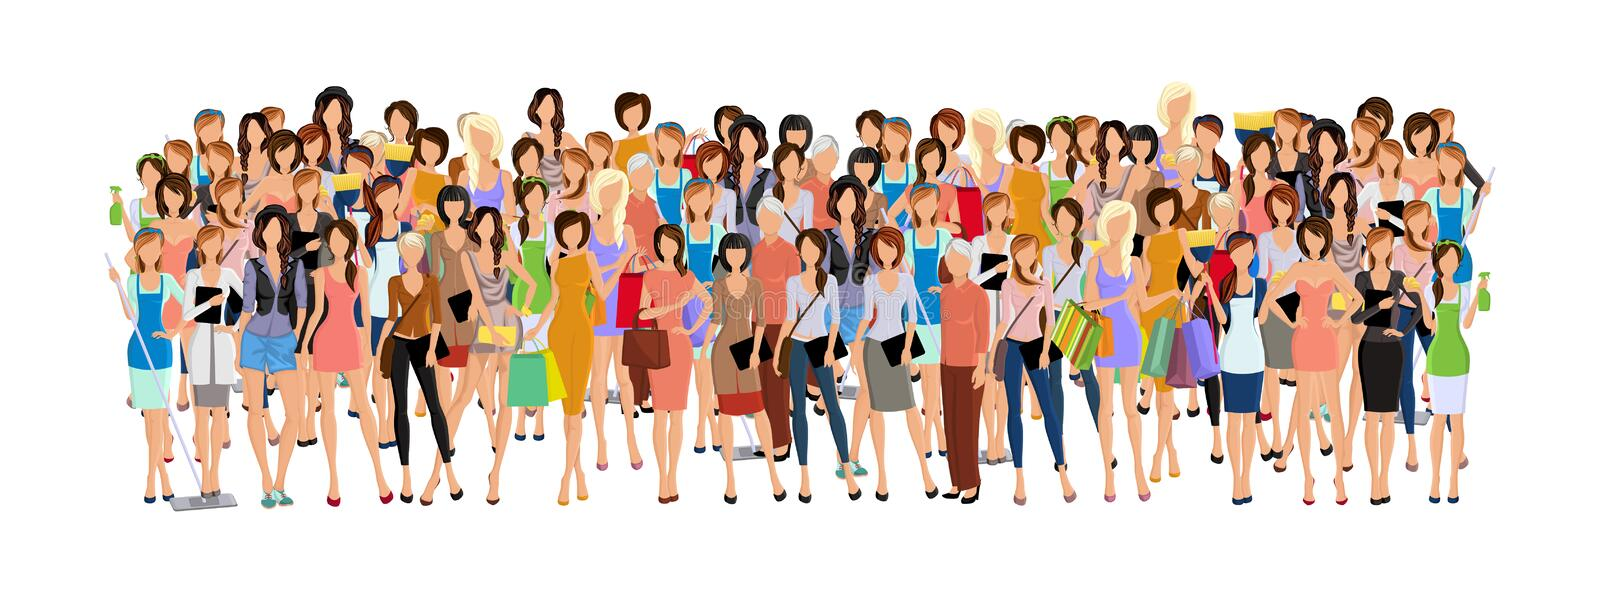 Group of woman. Large group crowd of different age women female professionals businesswomen vector illustration vector illustration